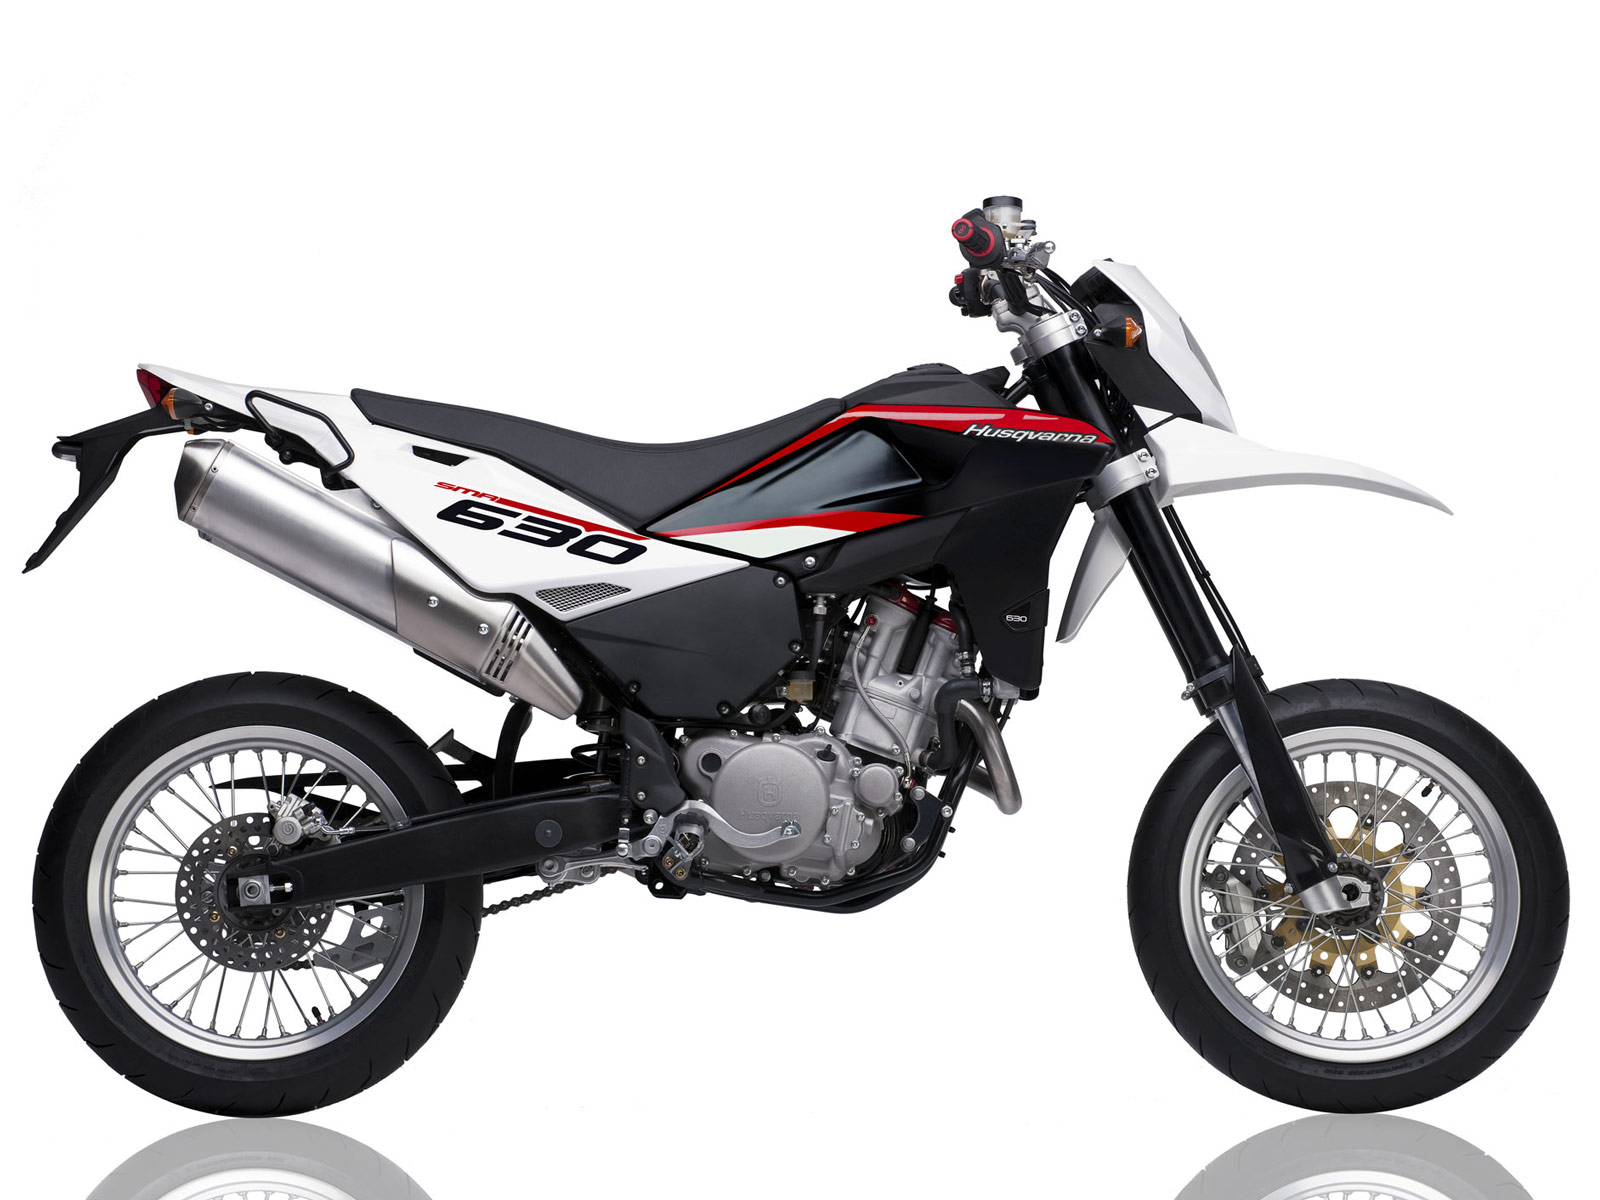 2012 Husqvarna SMR630 motorcycle photos, specifications